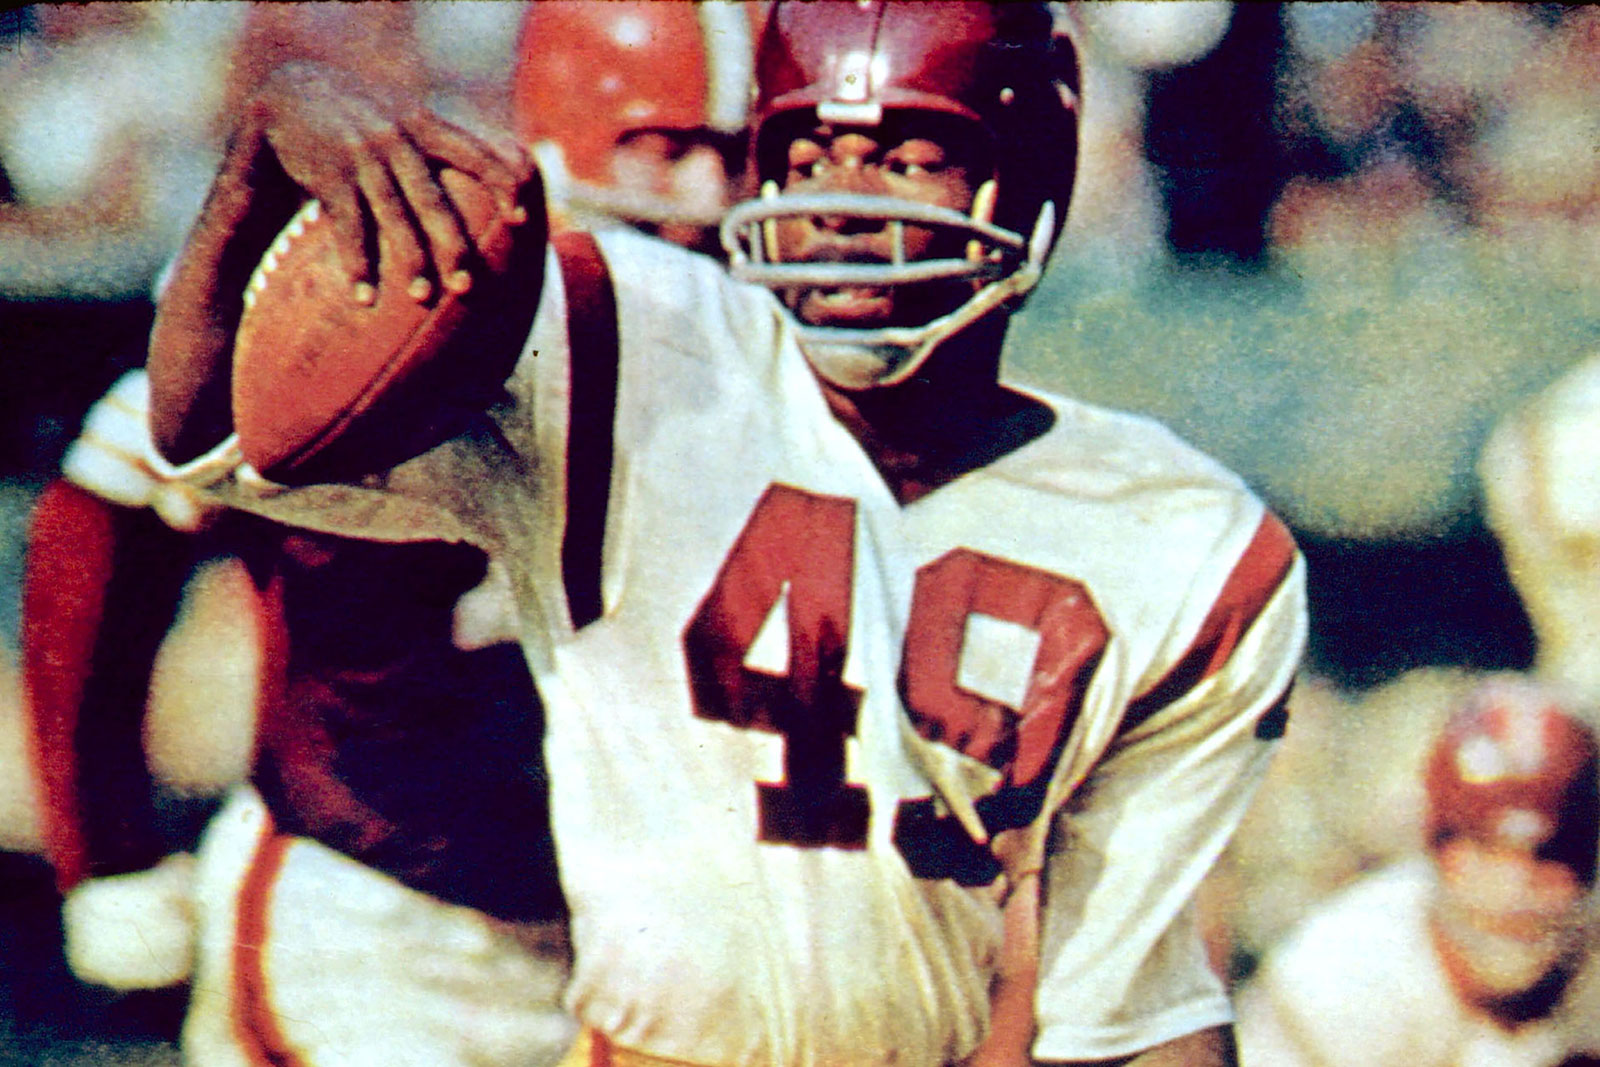 Bobby Mitchell runs the ball during a game between the Cleveland Browns and the Washington Redskins in 1963.